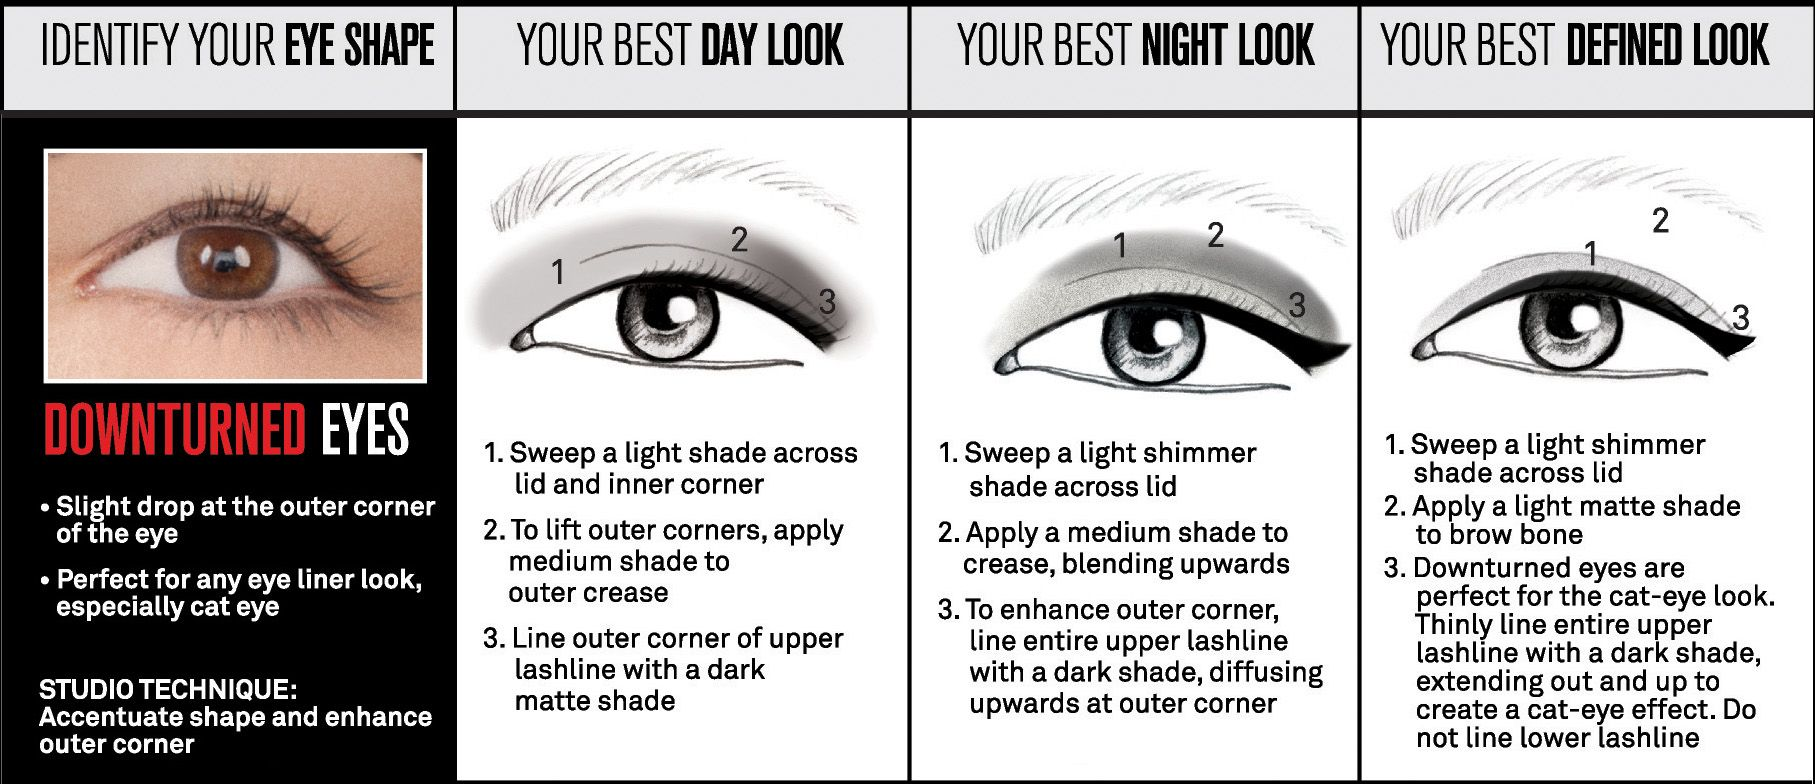 Down Turned Eyes  Downturned Eyes : How To Apply Eye Makeup For Your Eye  Shape